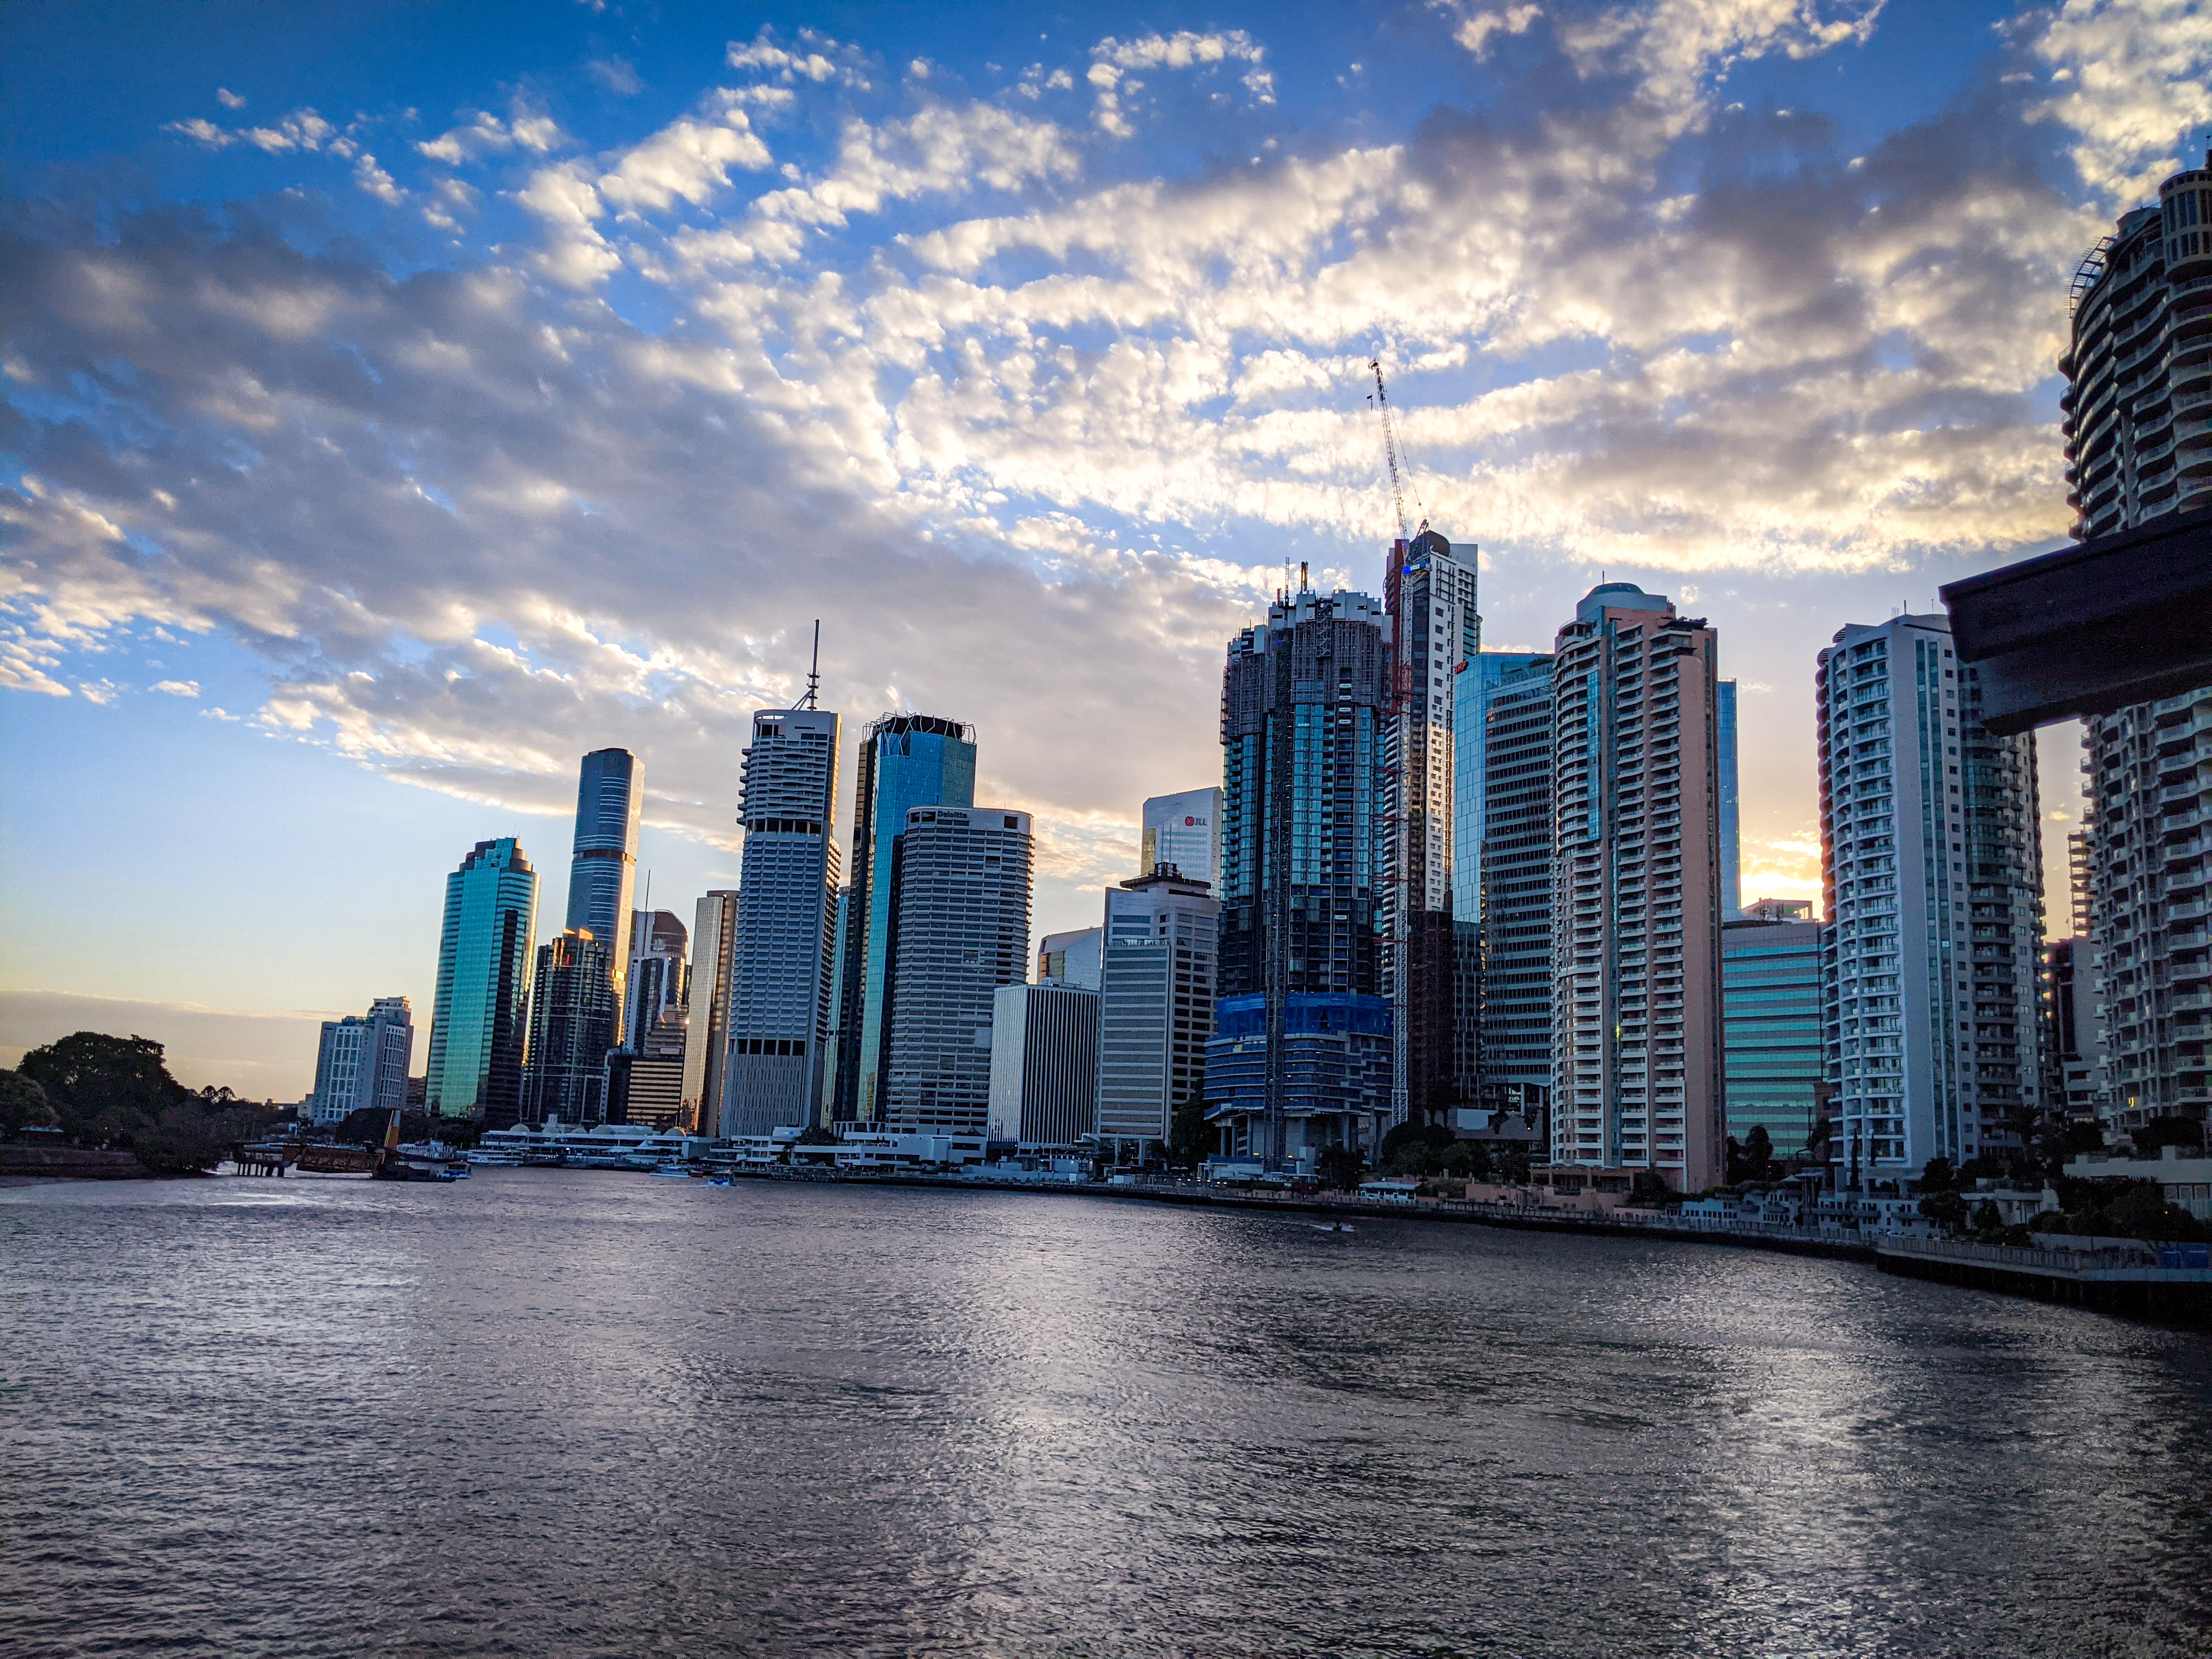 Just another look back at the Brisbane CBD at sunset from Howard Smith Wharves